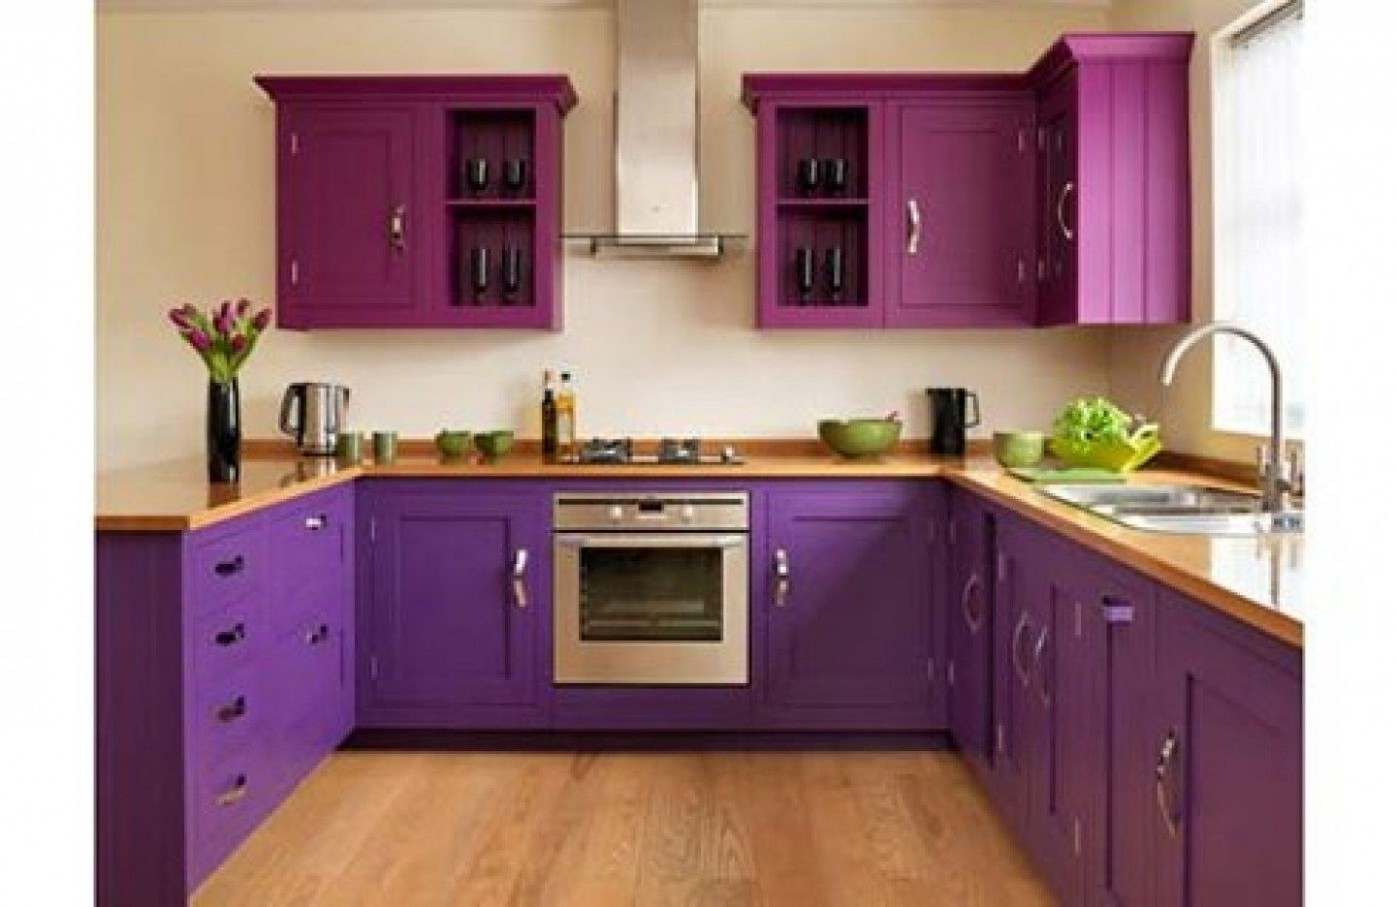 10 ideas about decorating kitchen on pinterest beautiful within  - Pink And Purple Kitchen Cabinets